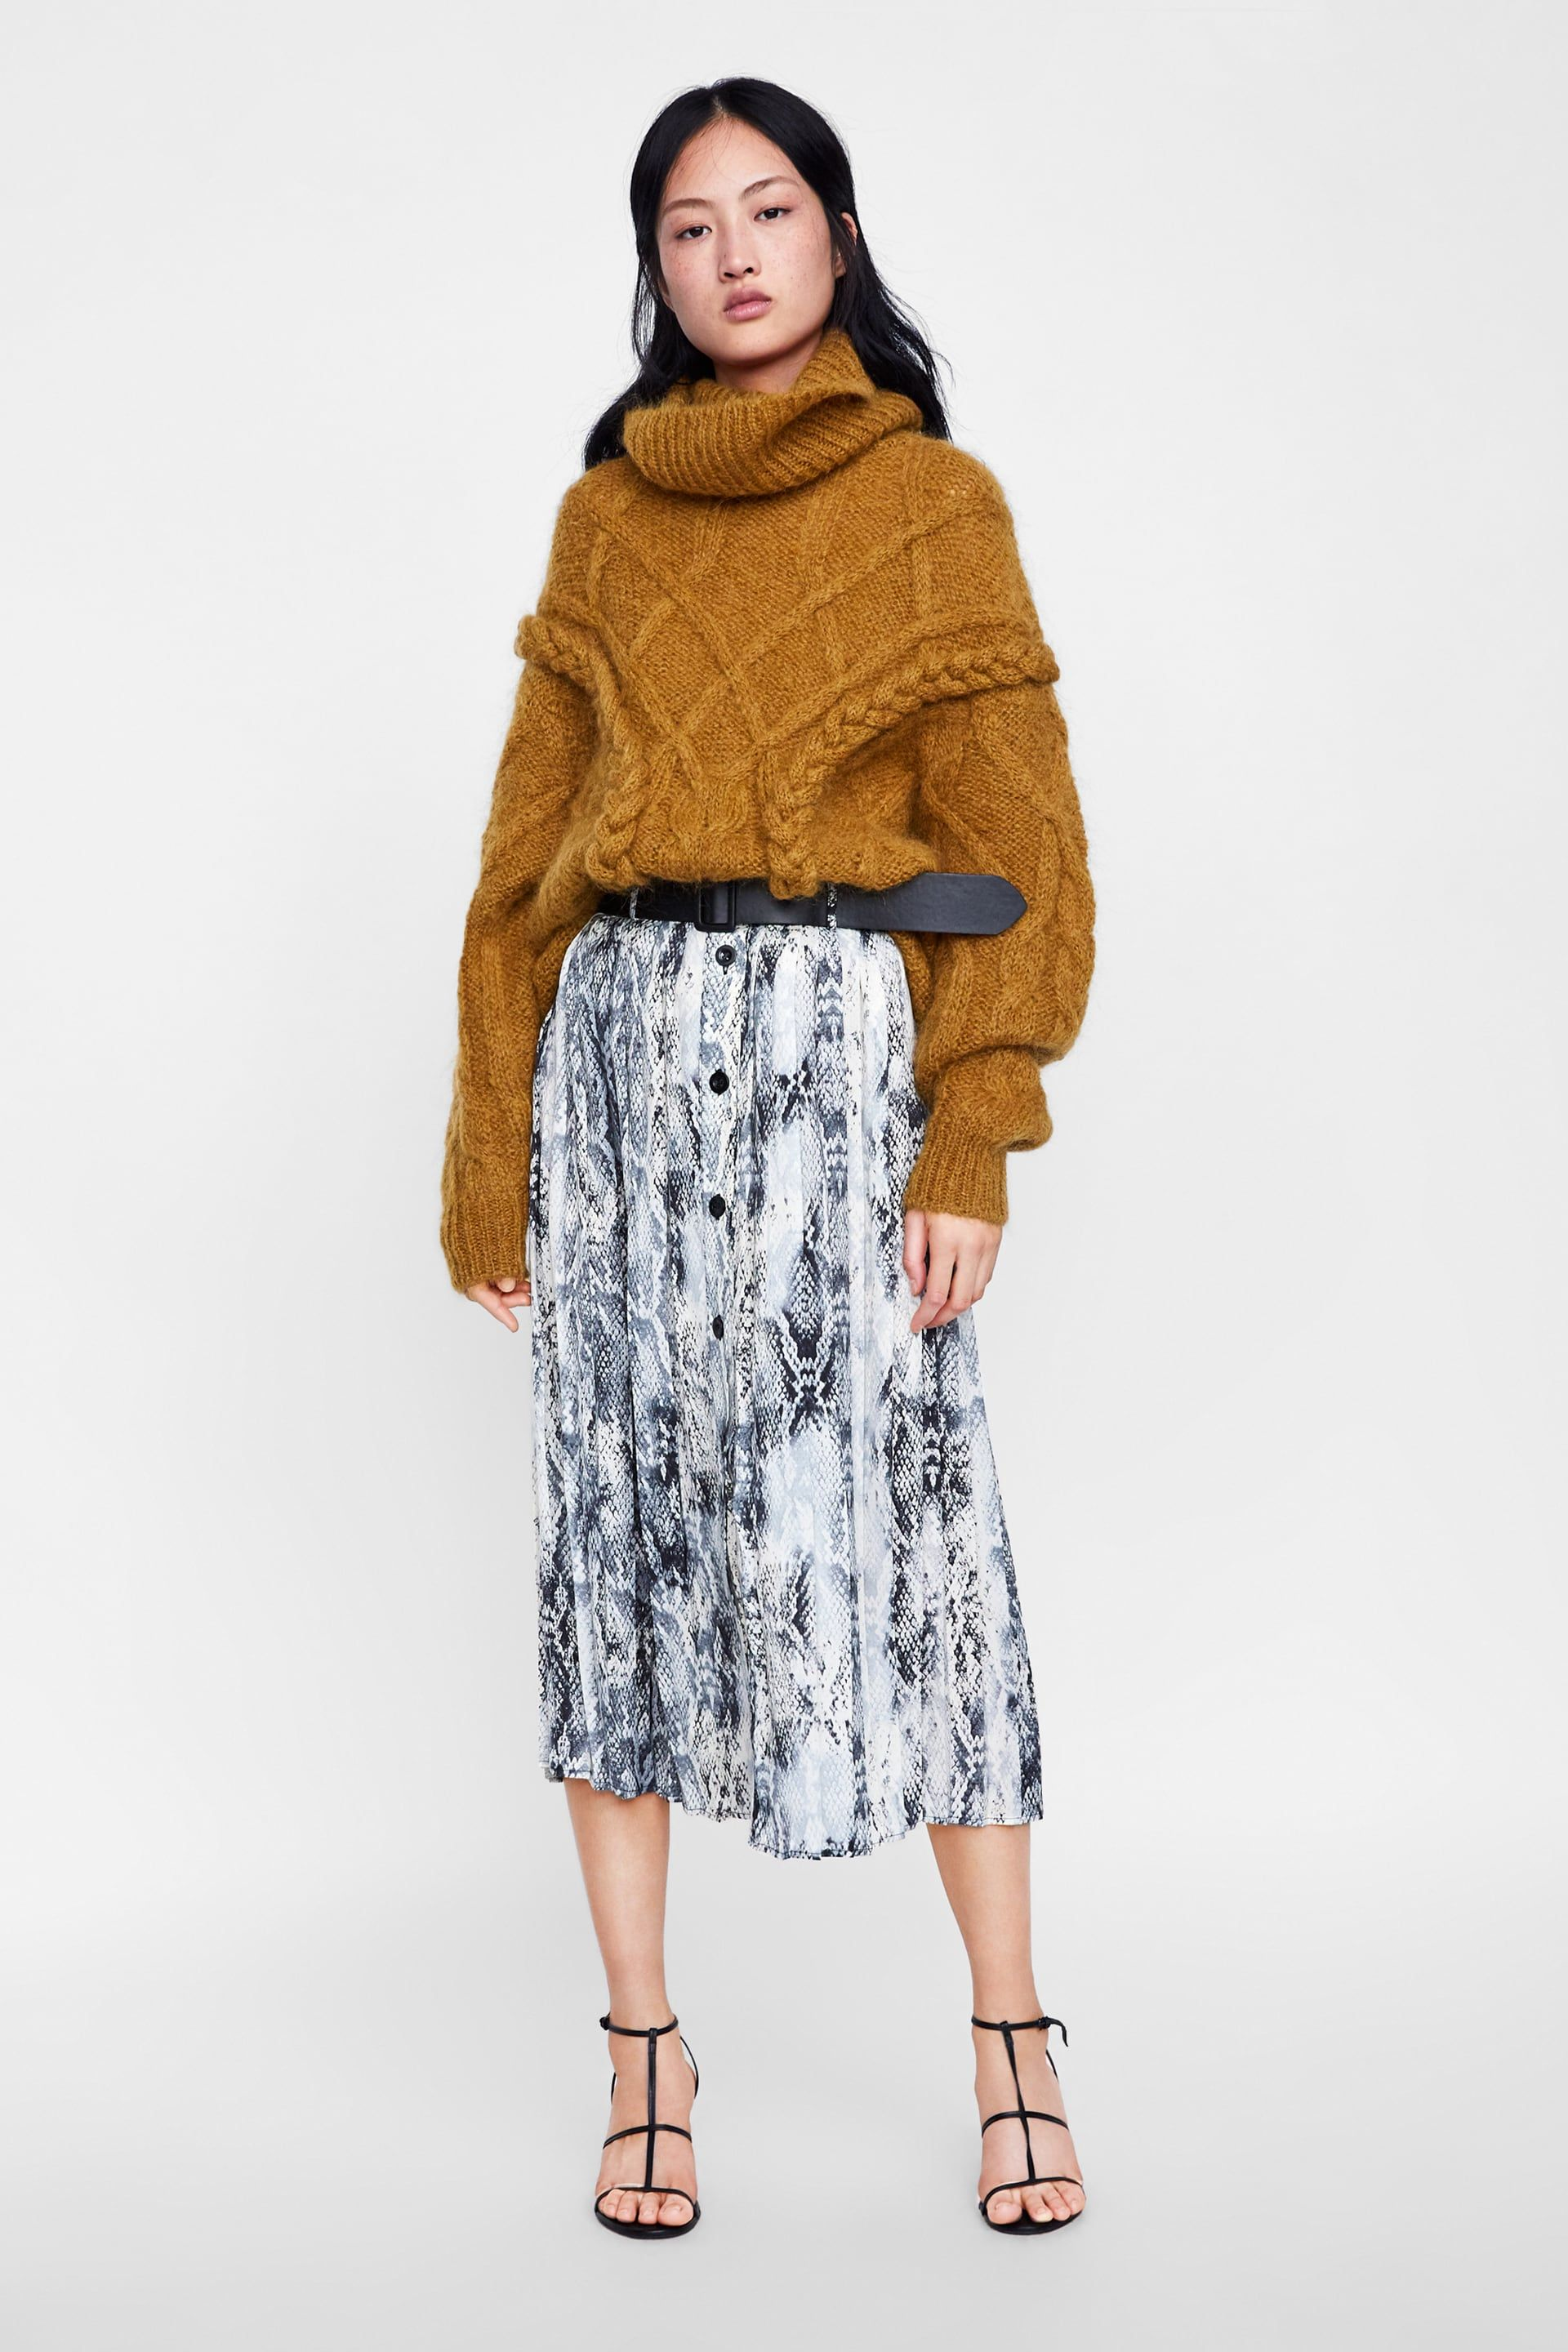 7c4a01c10 Image 1 of BELTED SNAKESKIN PRINT SKIRT from Zara | Style and outfit ...